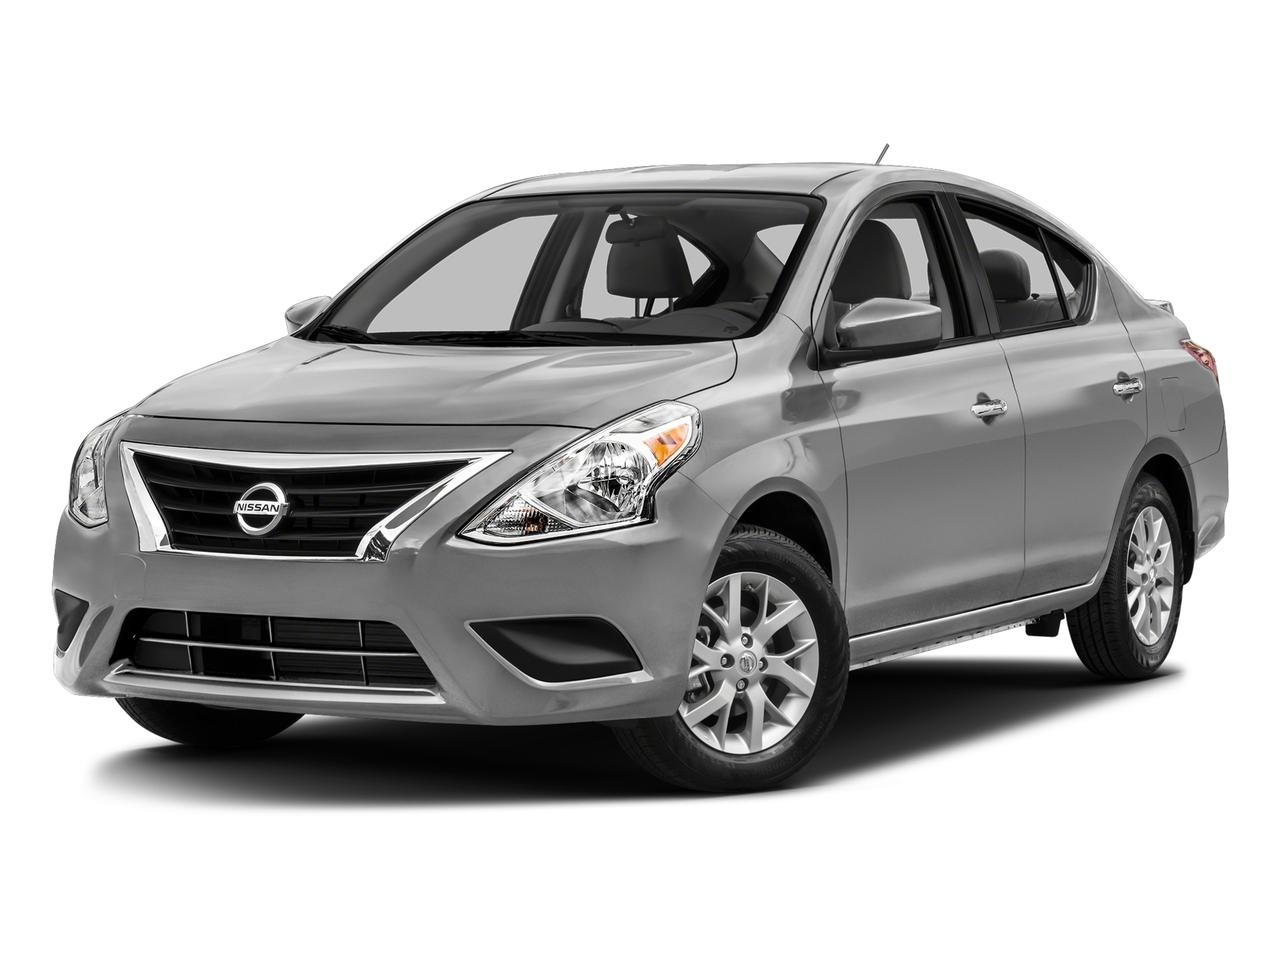 2016 Nissan Versa Vehicle Photo in Safford, AZ 85546